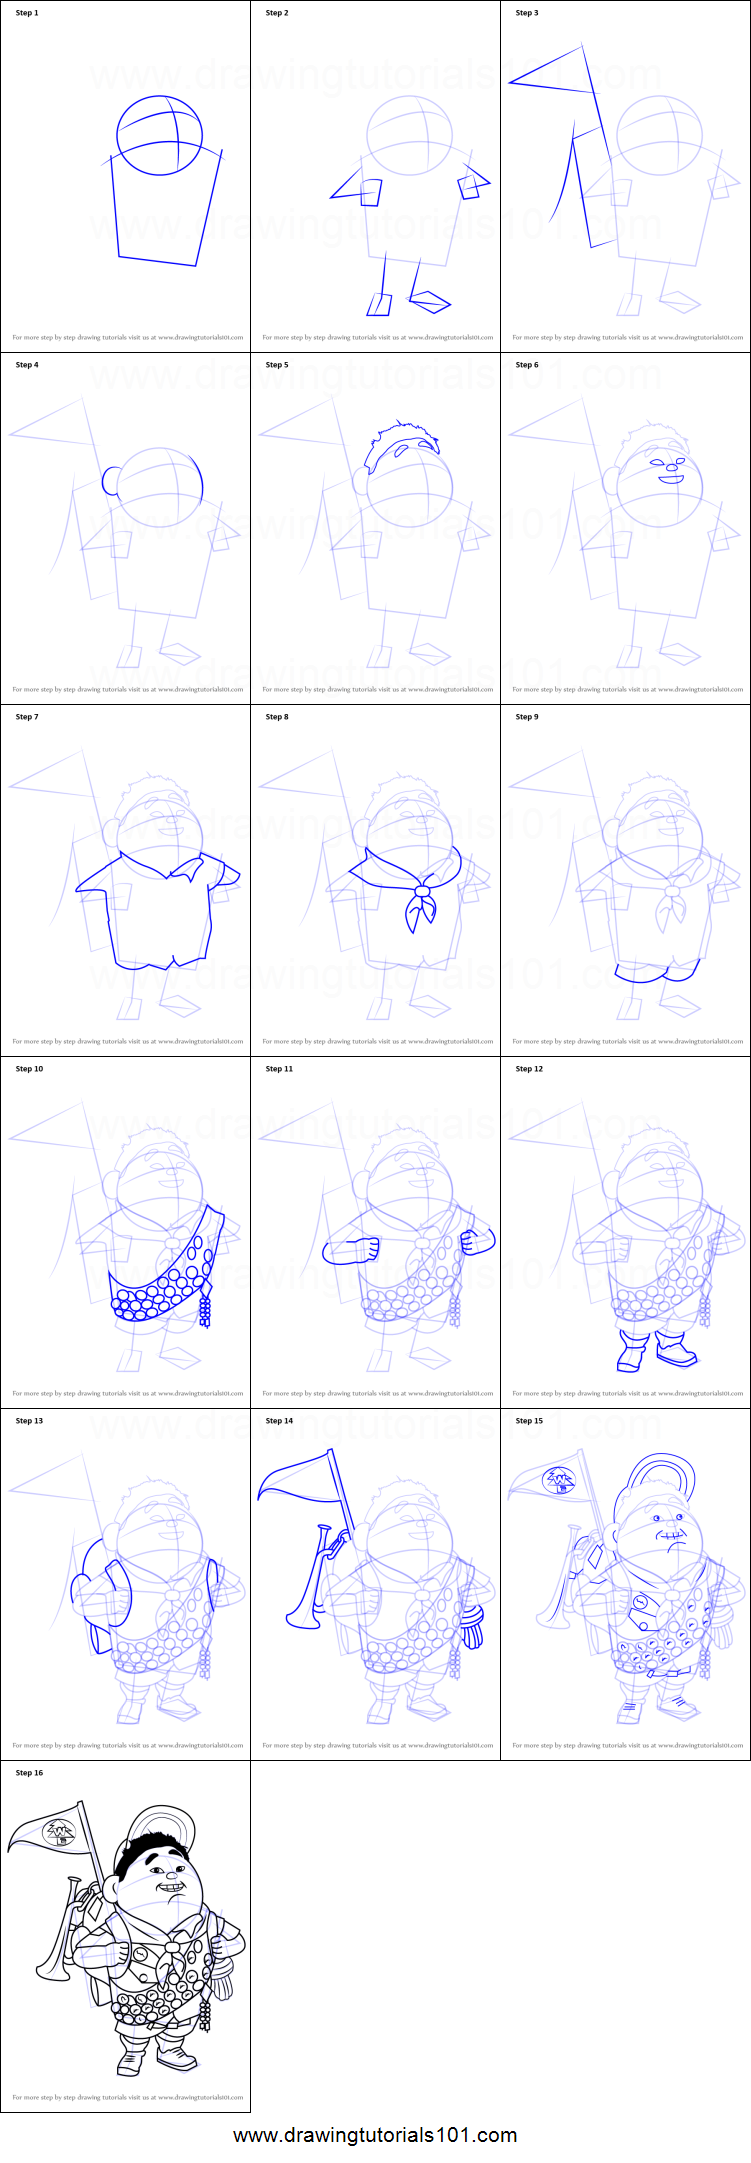 how to draw russell wilderness explorer from up printable step by